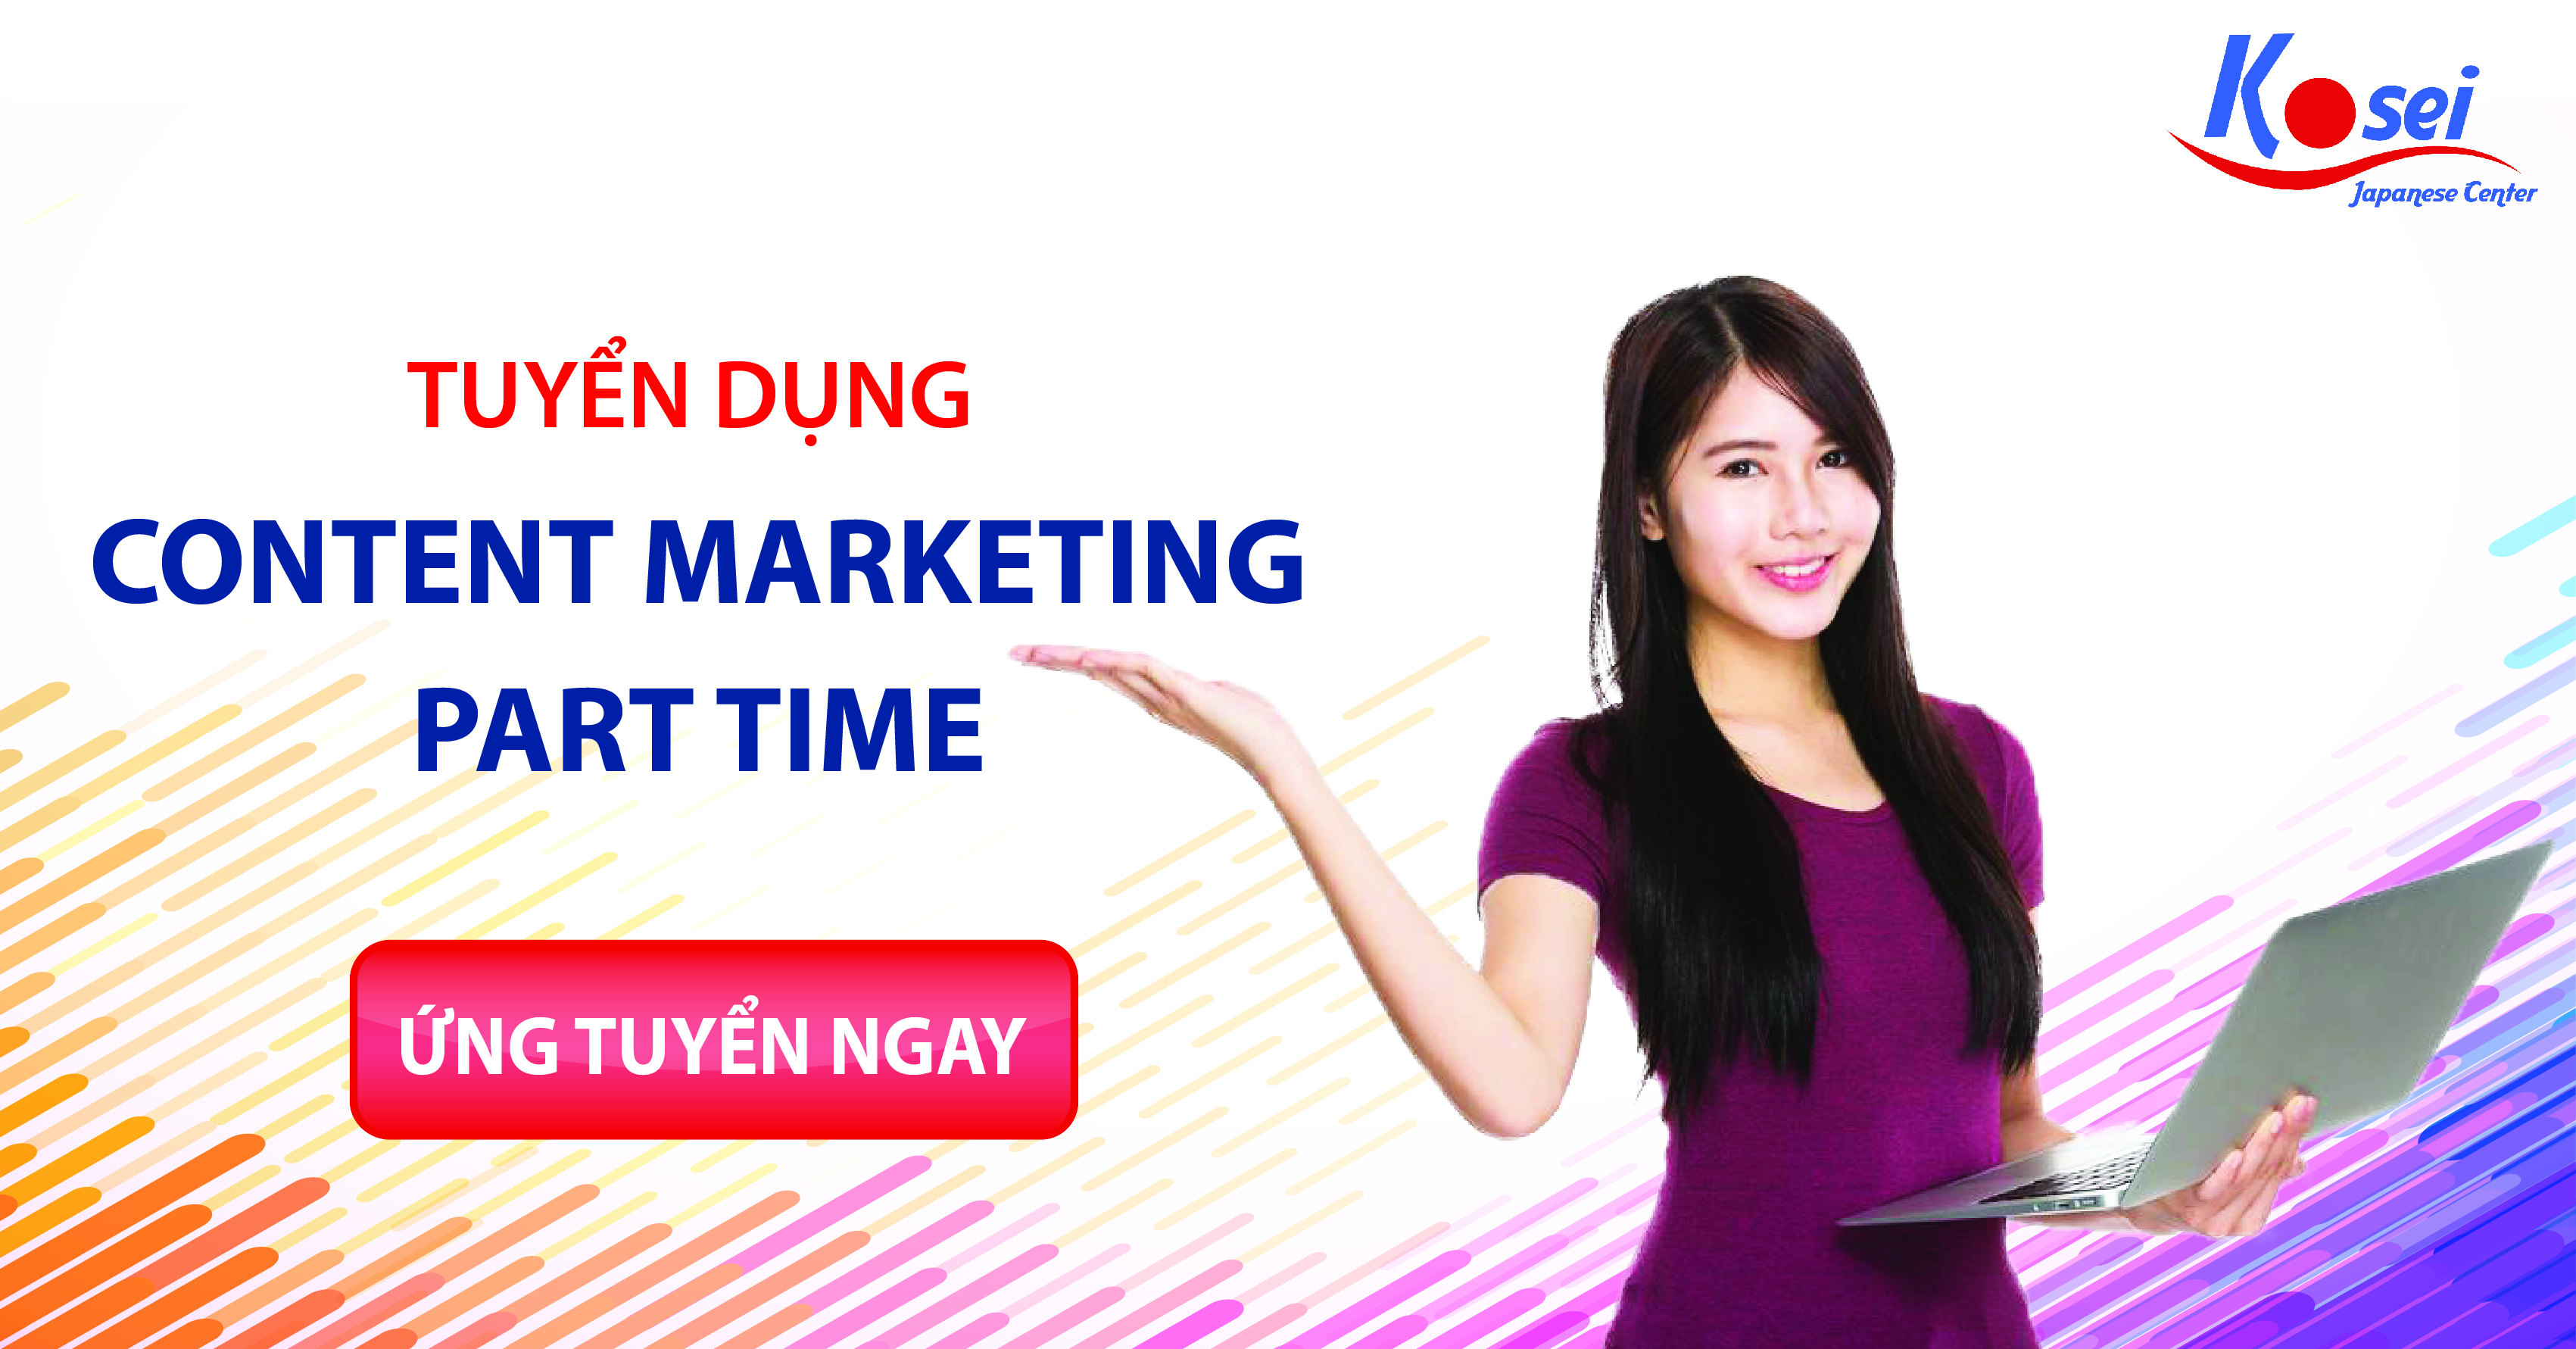 https://kosei.vn/tuyen-dung-nhan-vien-content-marketing-part-time-n1260.html